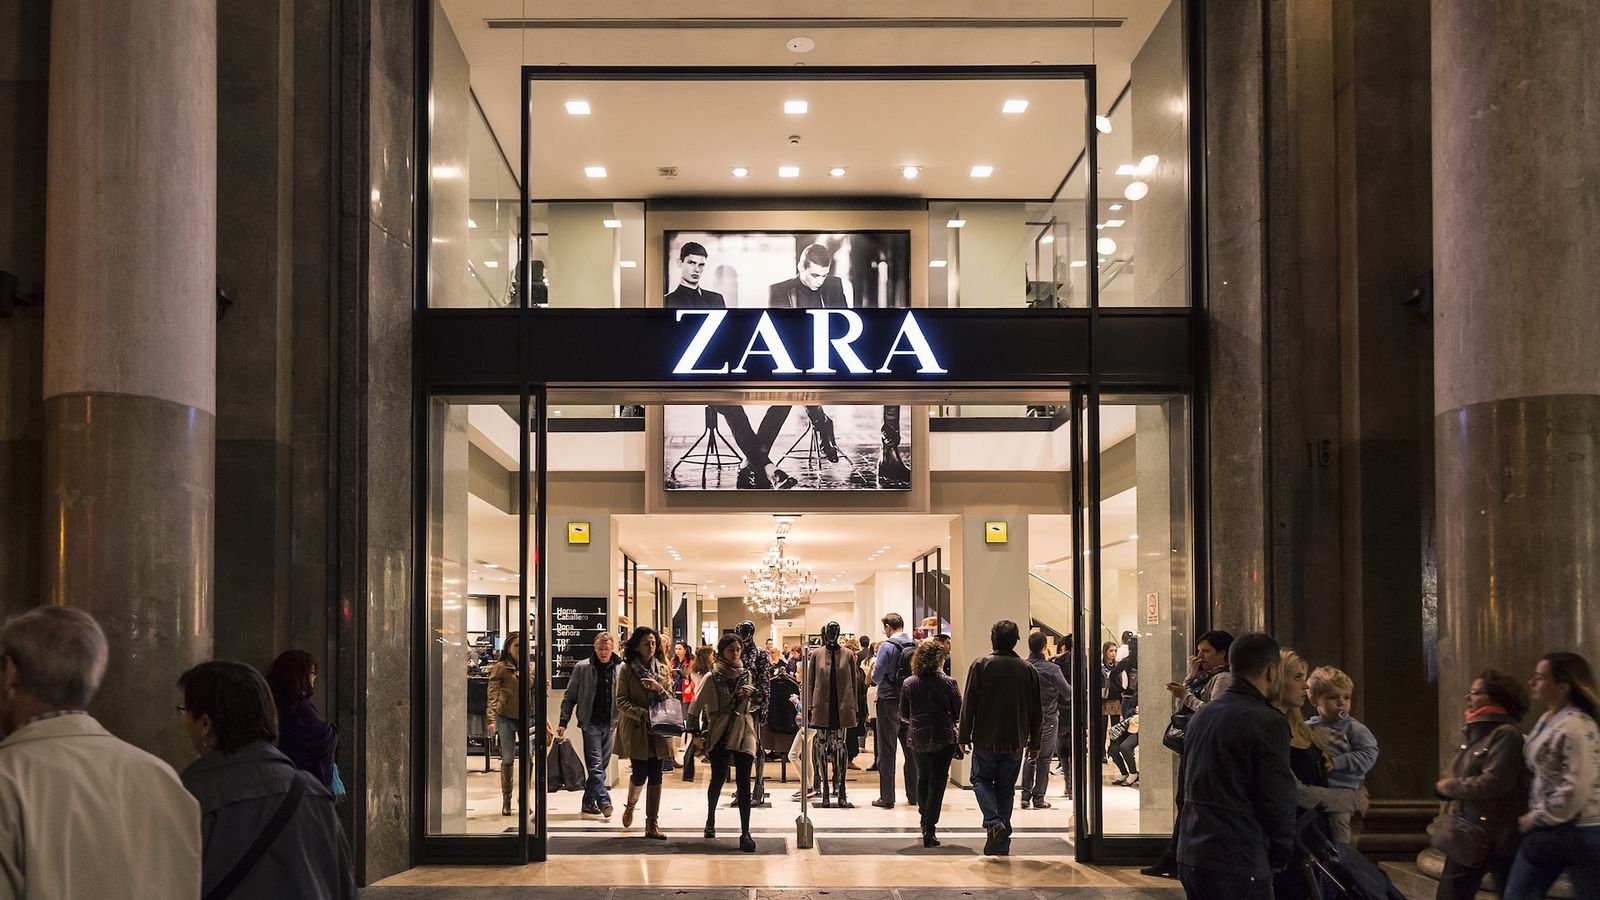 Zara Bans Customer From Store Because of Her Hijab - Racked